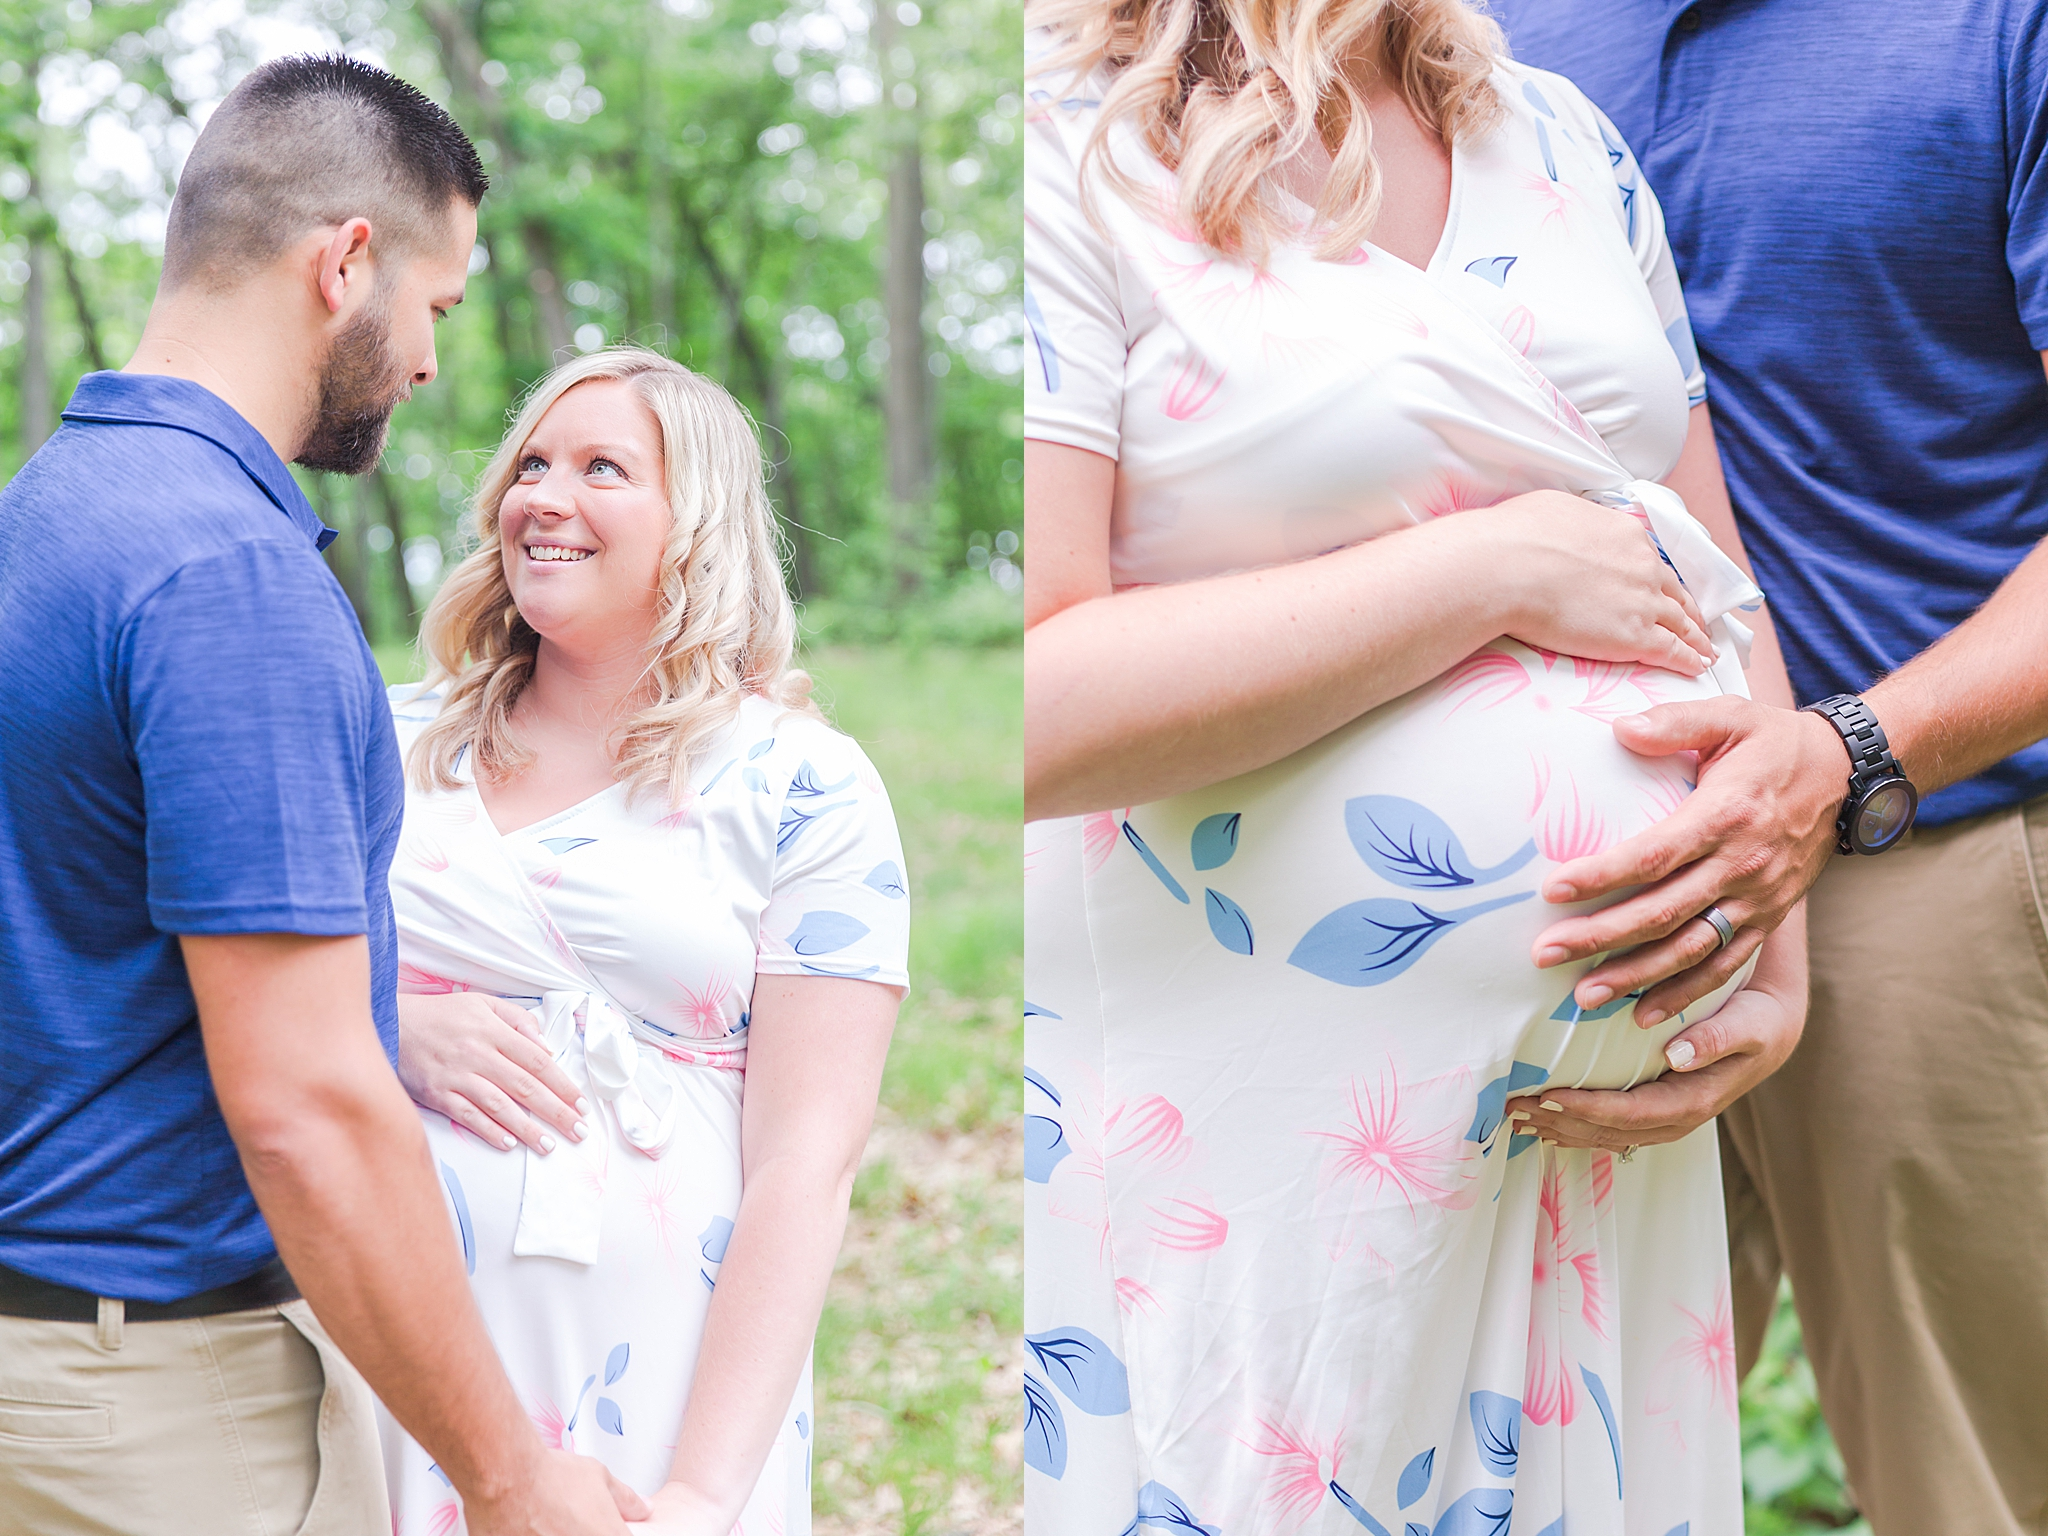 detroit-wedding-photographer-kensington-metro-park-maternity-keli-derek-by-courtney-carolyn-photography_0006.jpg